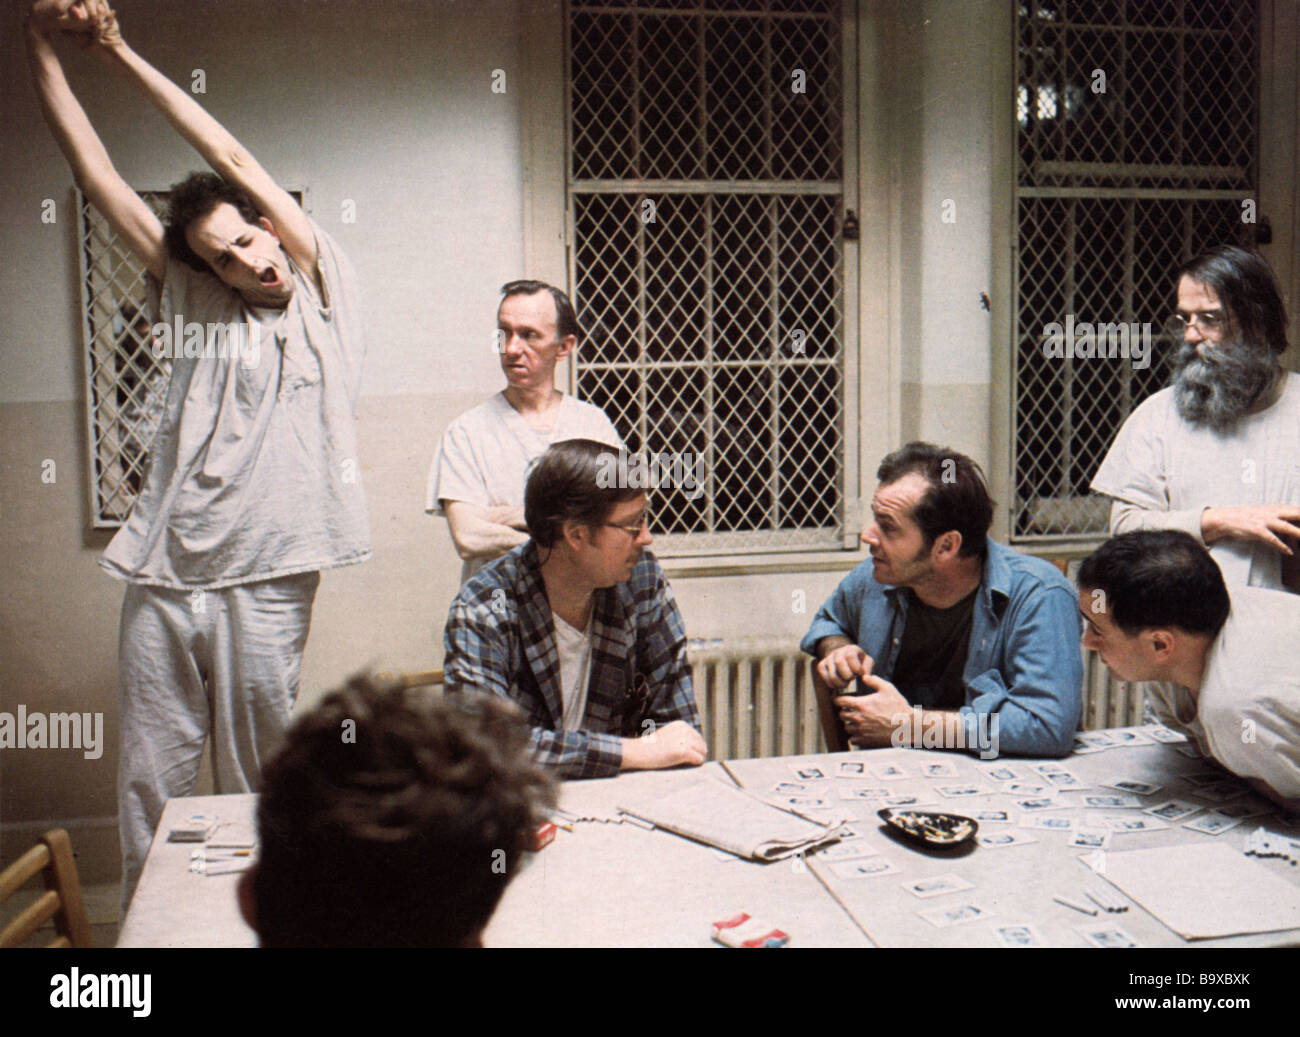 ONE FLEW OVER THE CUCKOO'S NEST 1975 UA film with Jack Nicholson seated in blue shirt - Stock Image